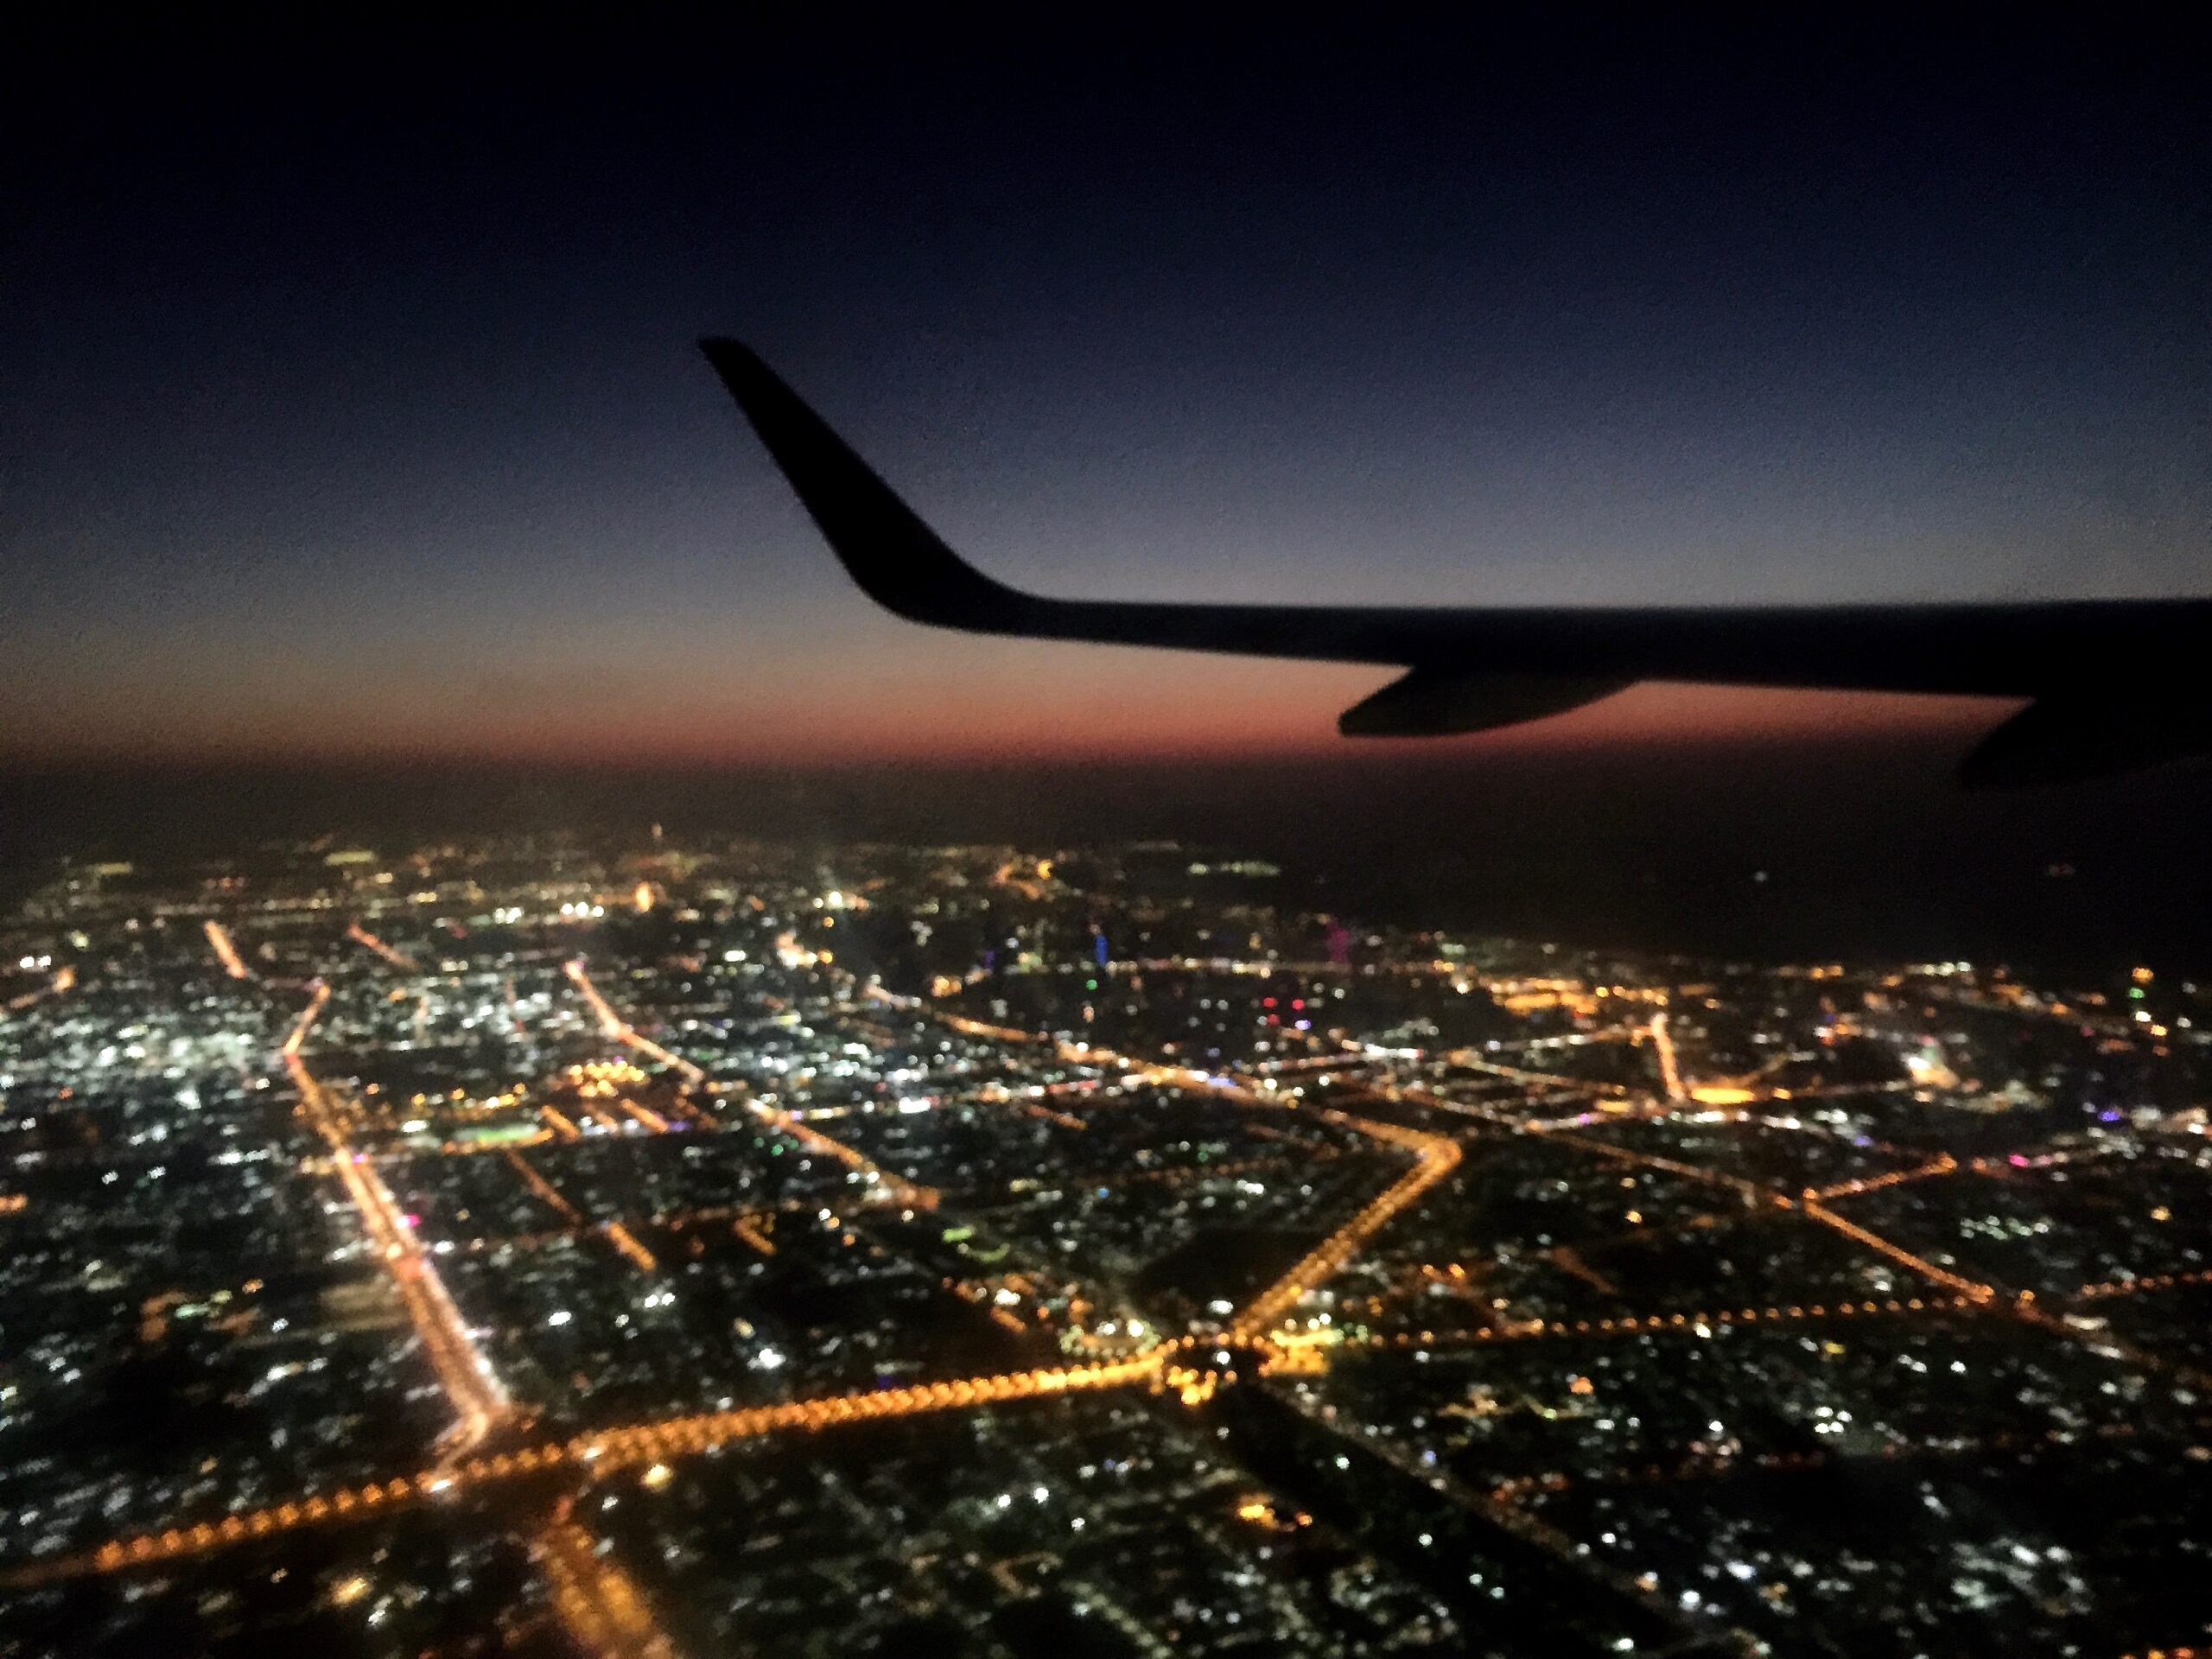 A plane flies over a city at night